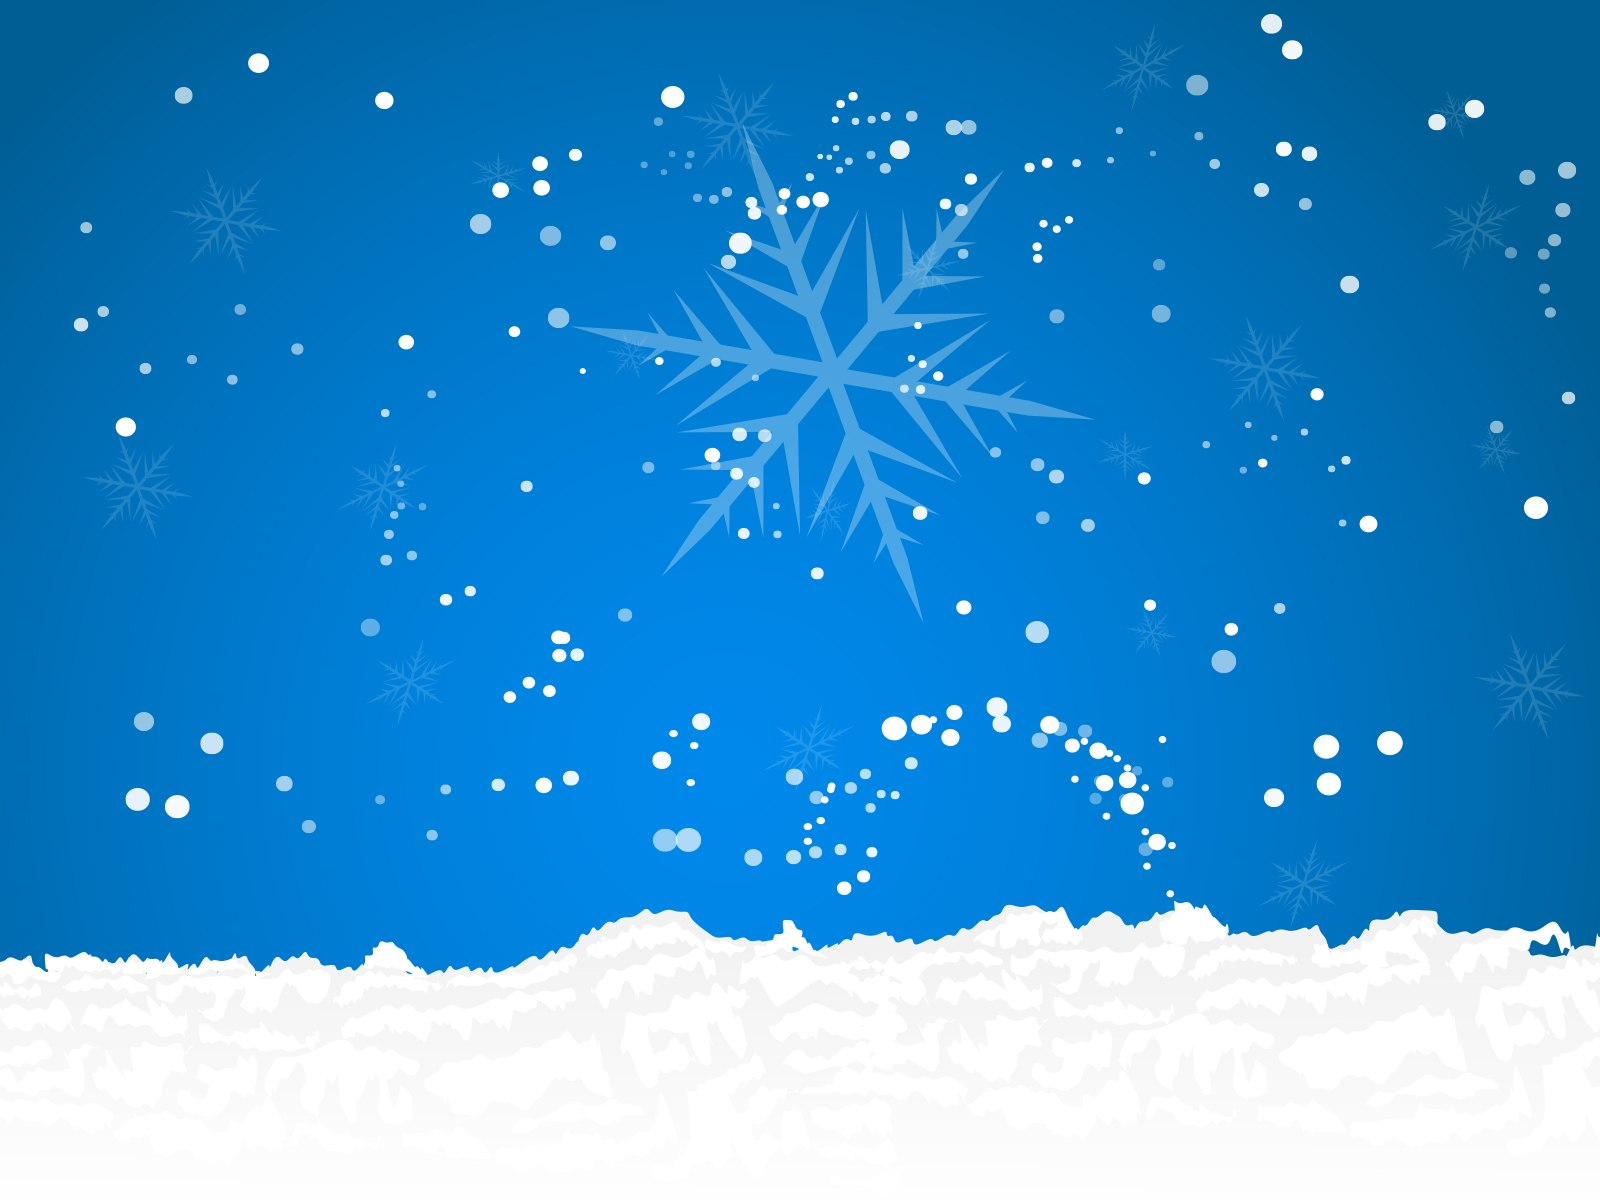 Snow Powerpoint  Free Ppt Backgrounds And Templates With Regard To Snow Powerpoint Template